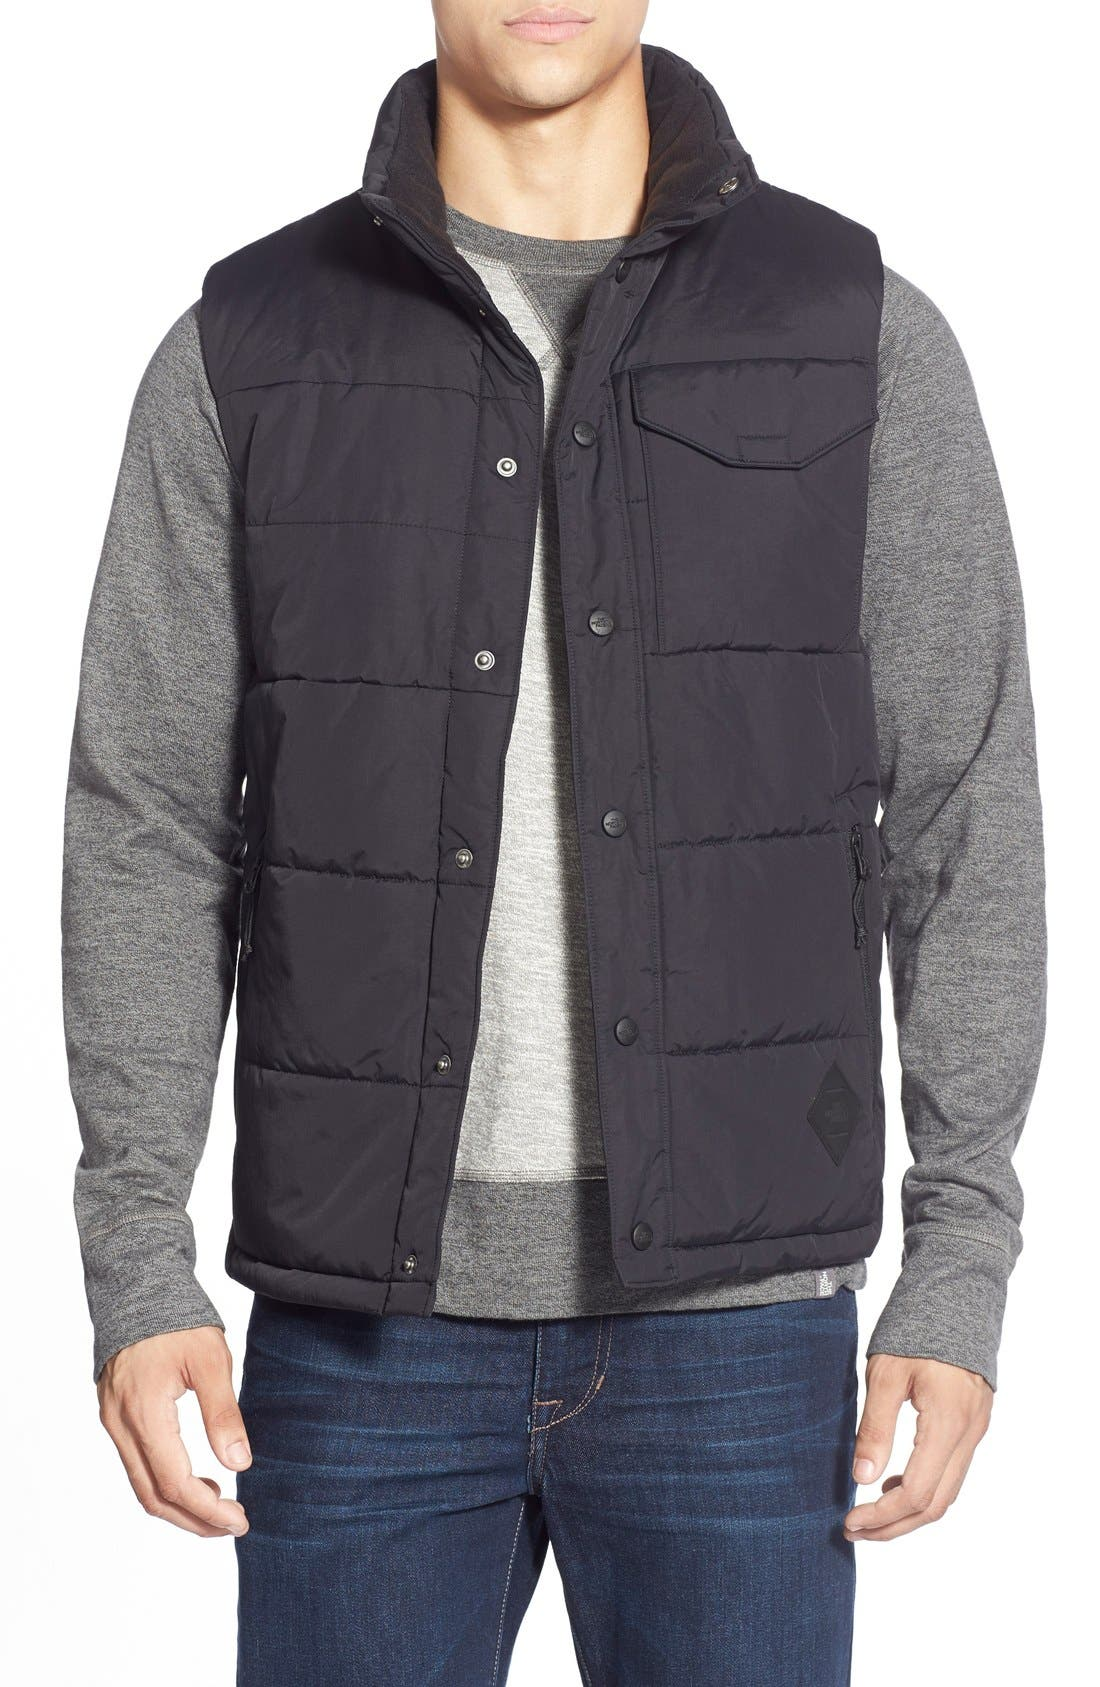 Main Image - The North Face 'Patrick's Point' Quilted Vest